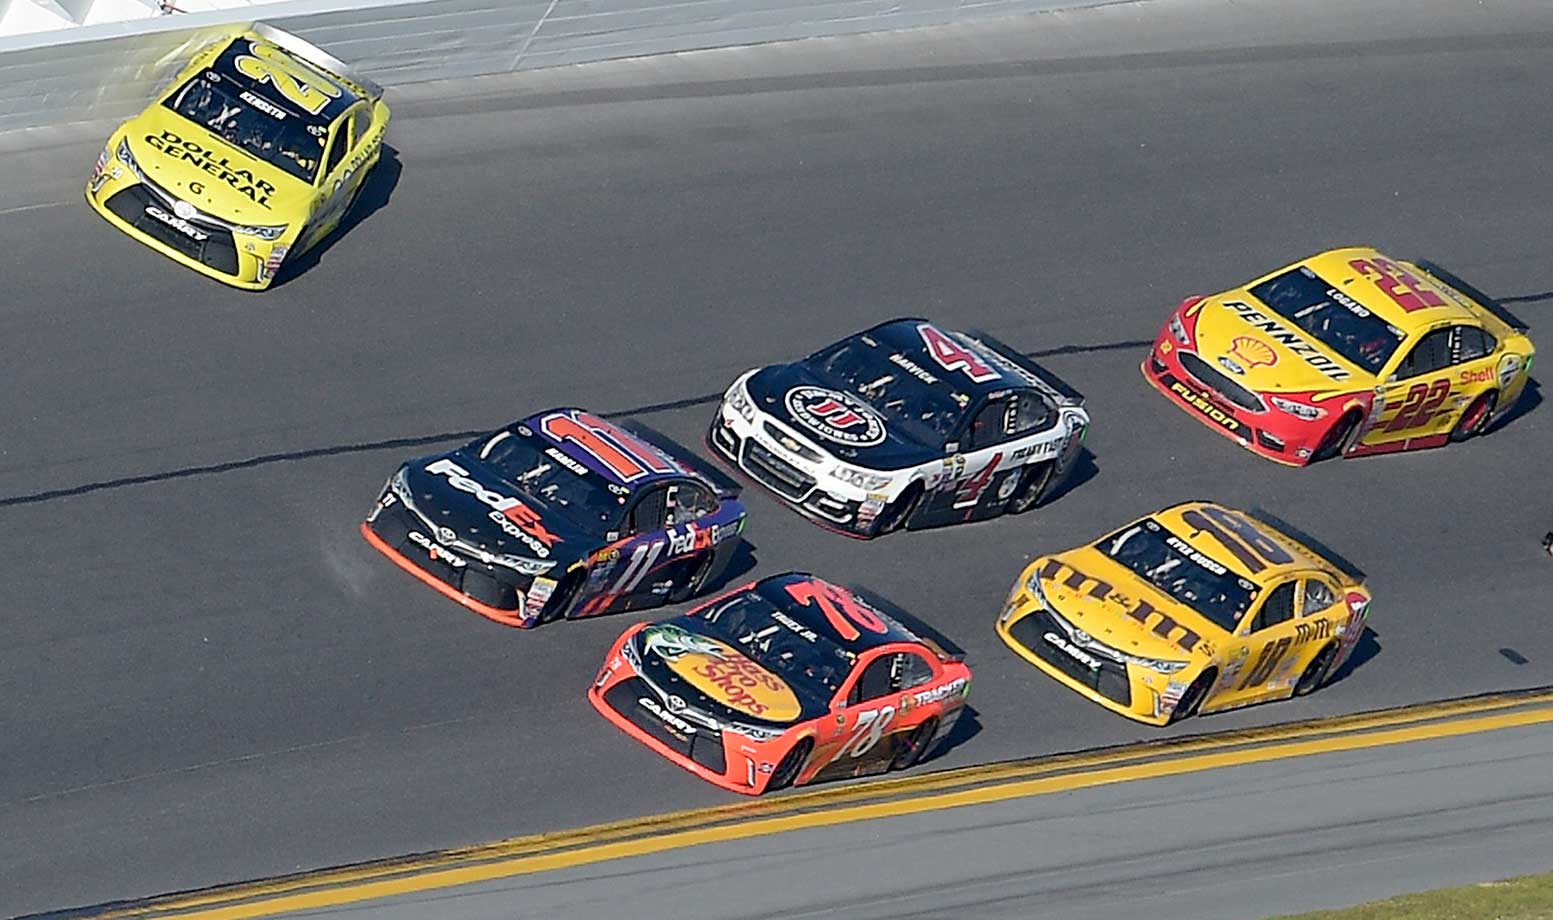 Matt Kenseth (top left) failed in his attempt to block Denny Hamlin (11) and faded from second to 14th in the final moments.